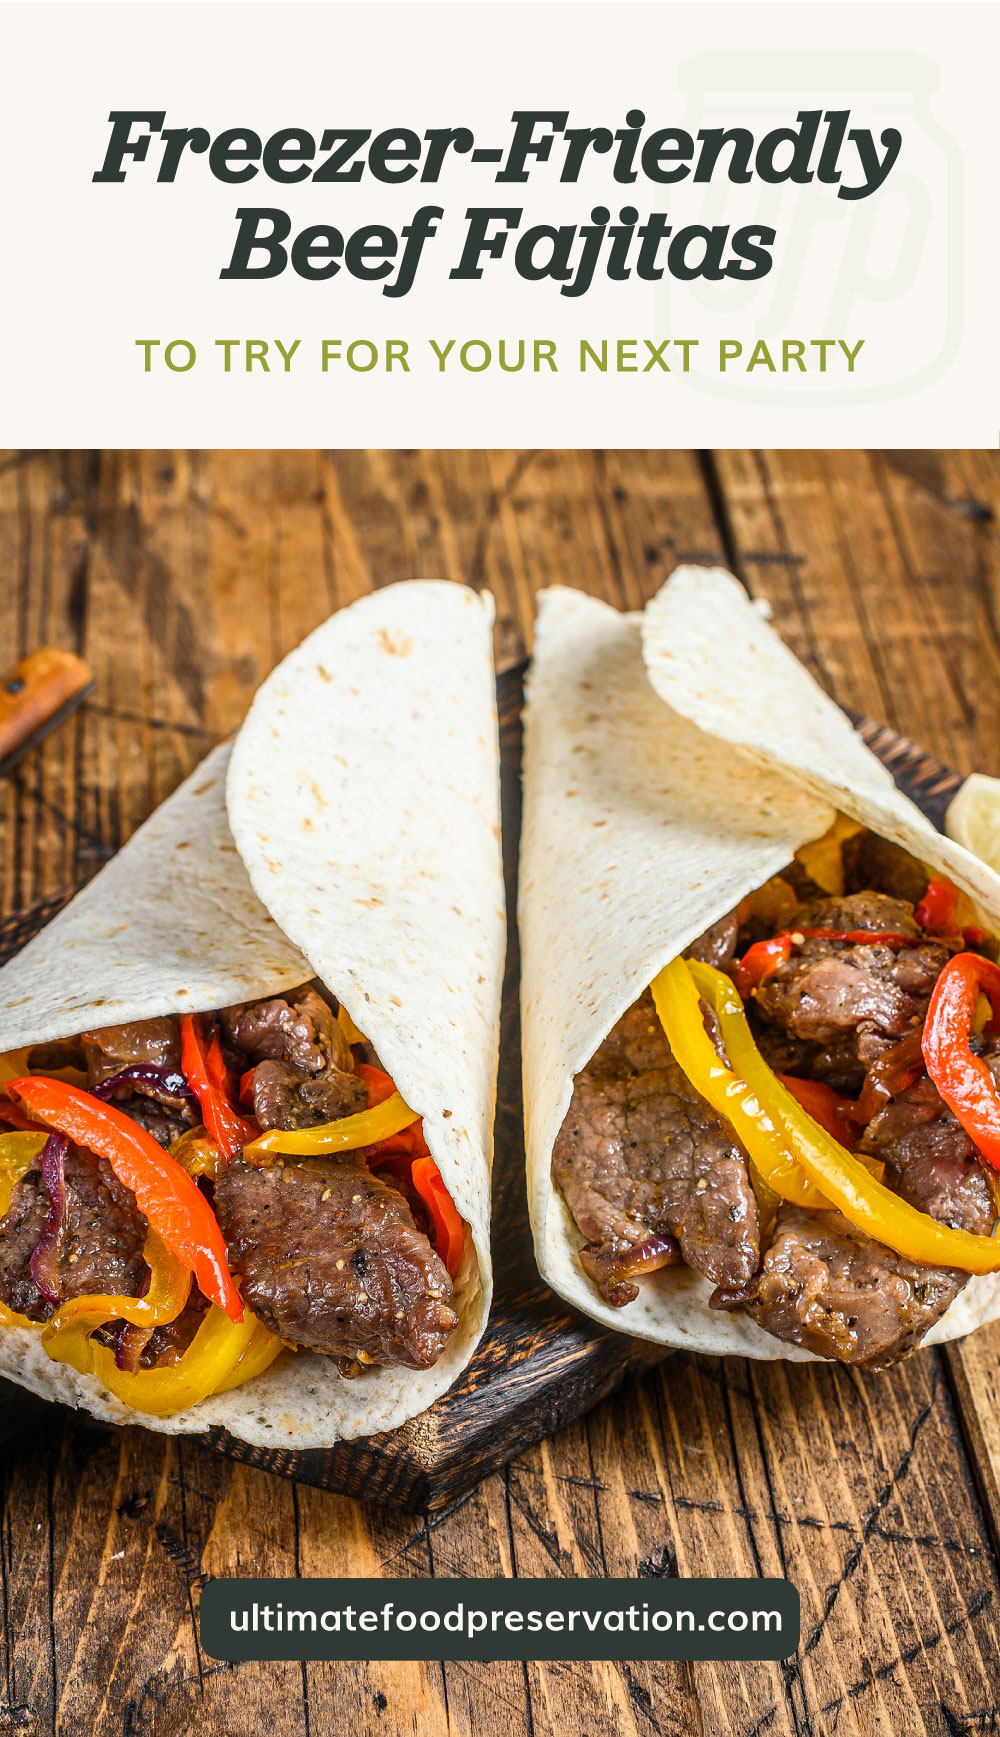 """Text area which says """"Freezer-Friendly Beef Fajitas To Try For Your Next Party"""" next to two beef fajitas on a wooden surface followed by another text area which says ultimatefoodpreservation.com"""